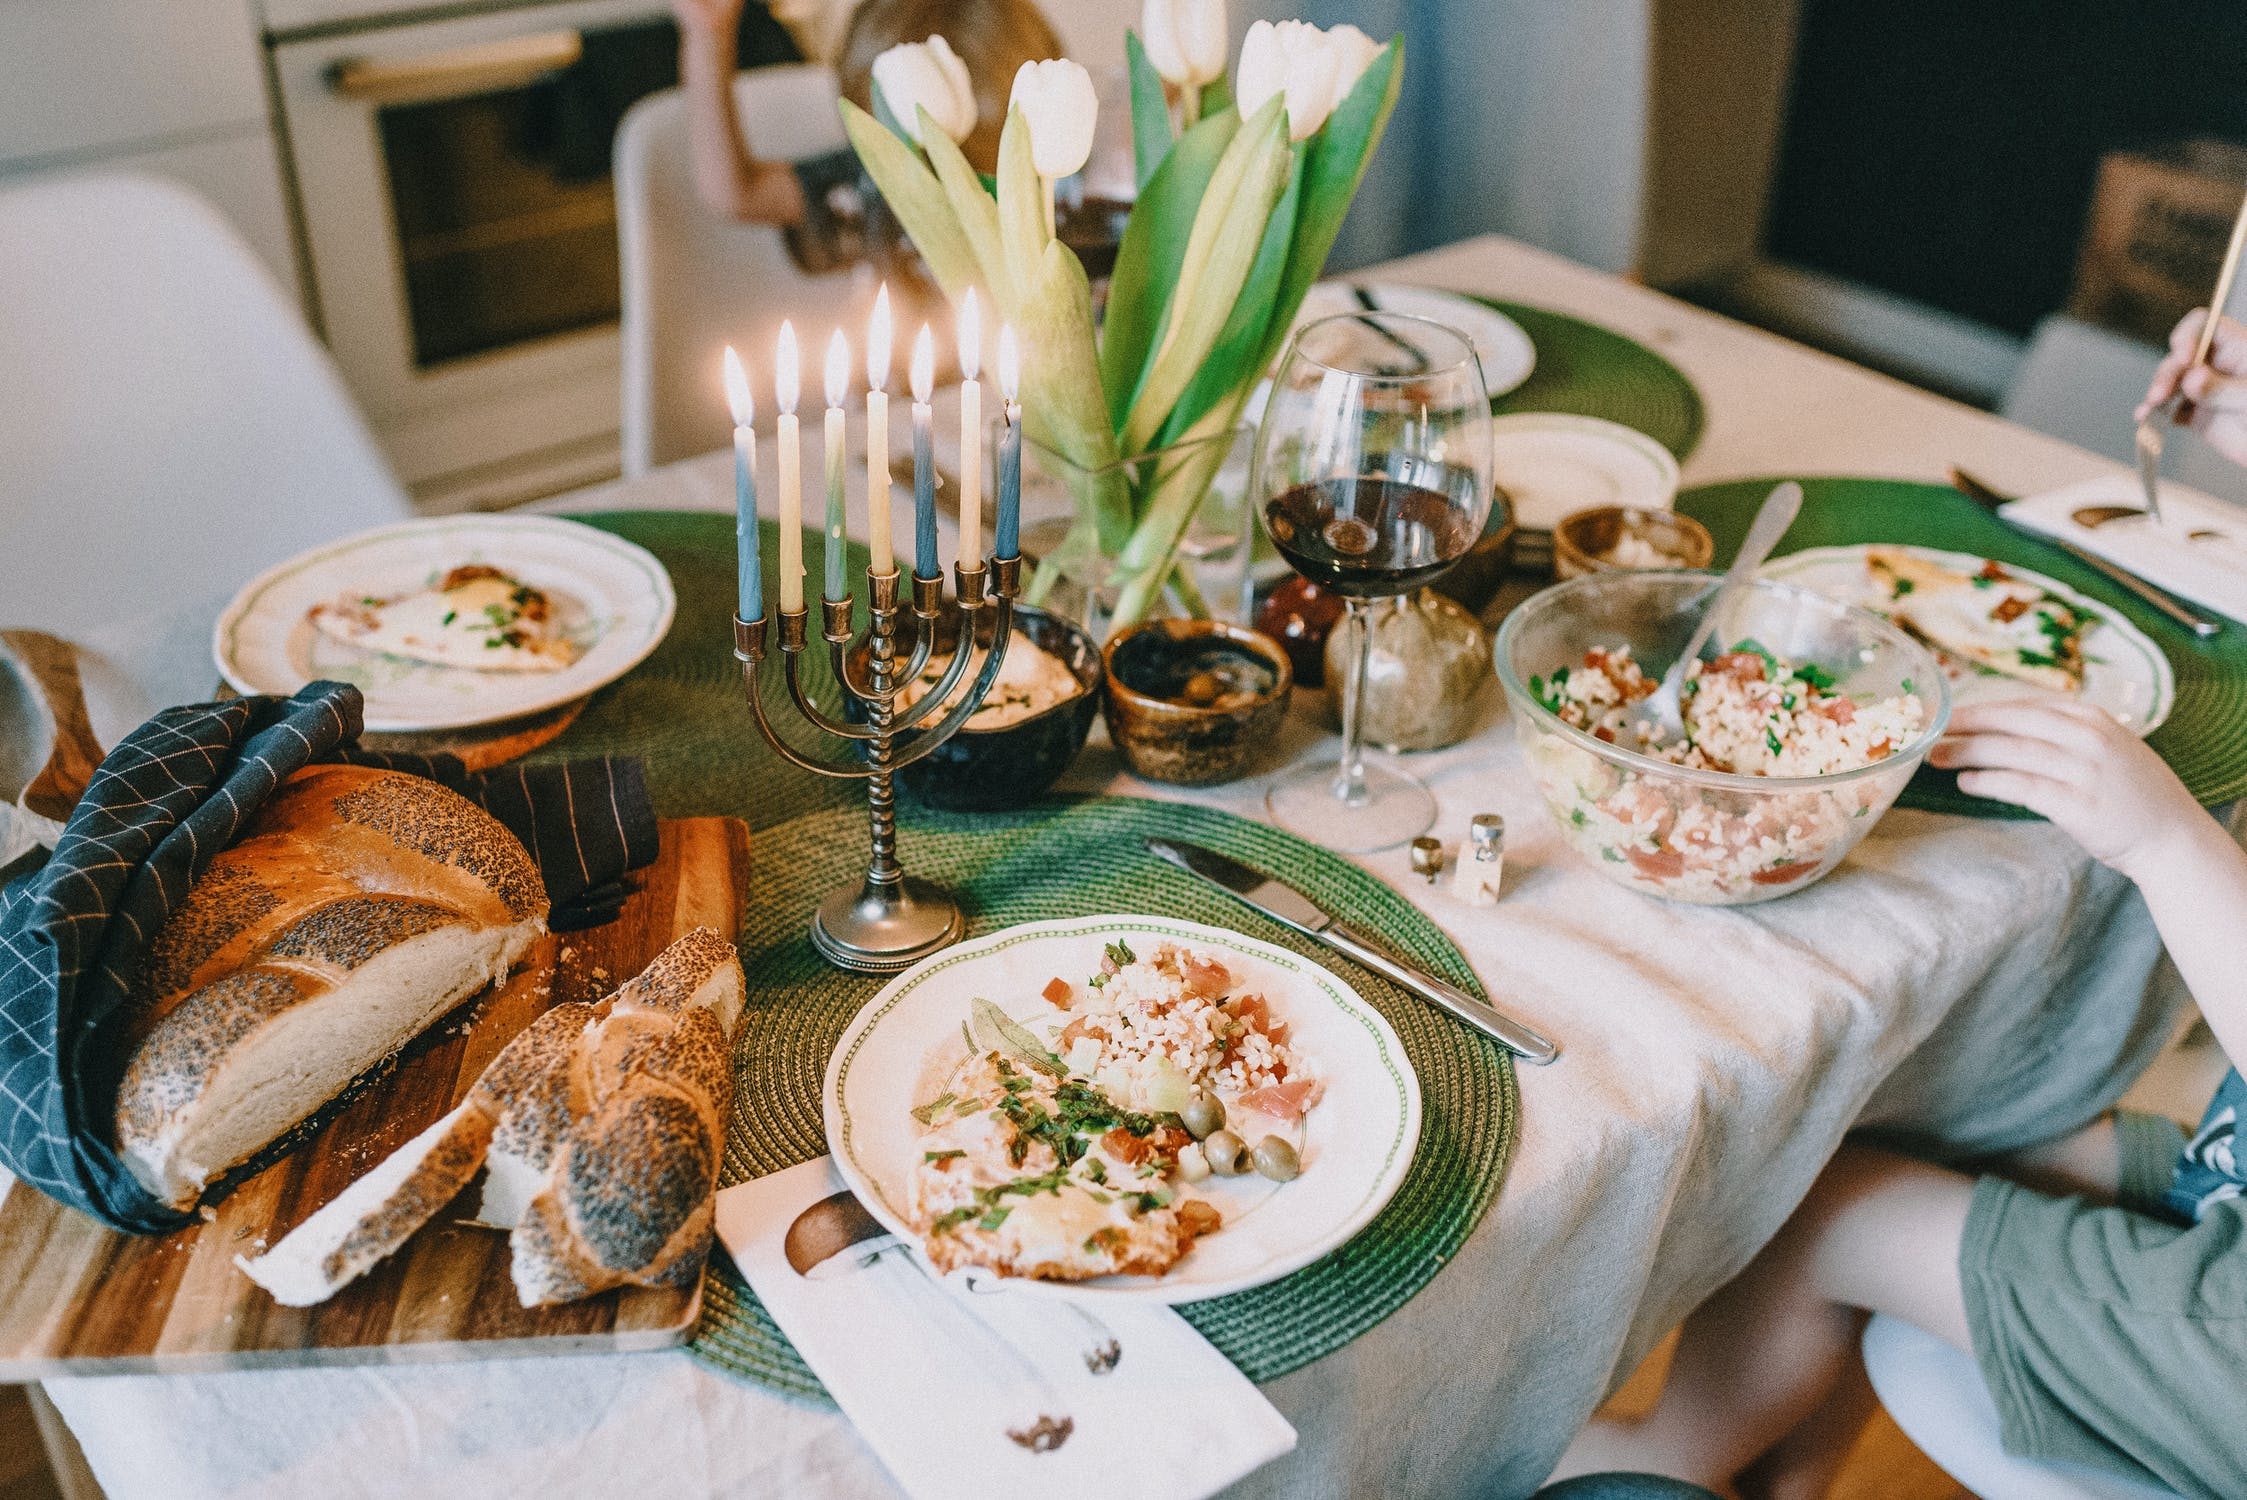 A fully lit menorah sits on a table strewn with holiday food and goodies. Photo by pexels user Ksenia Chernaya. Photo used courtesy of Pexels.com.